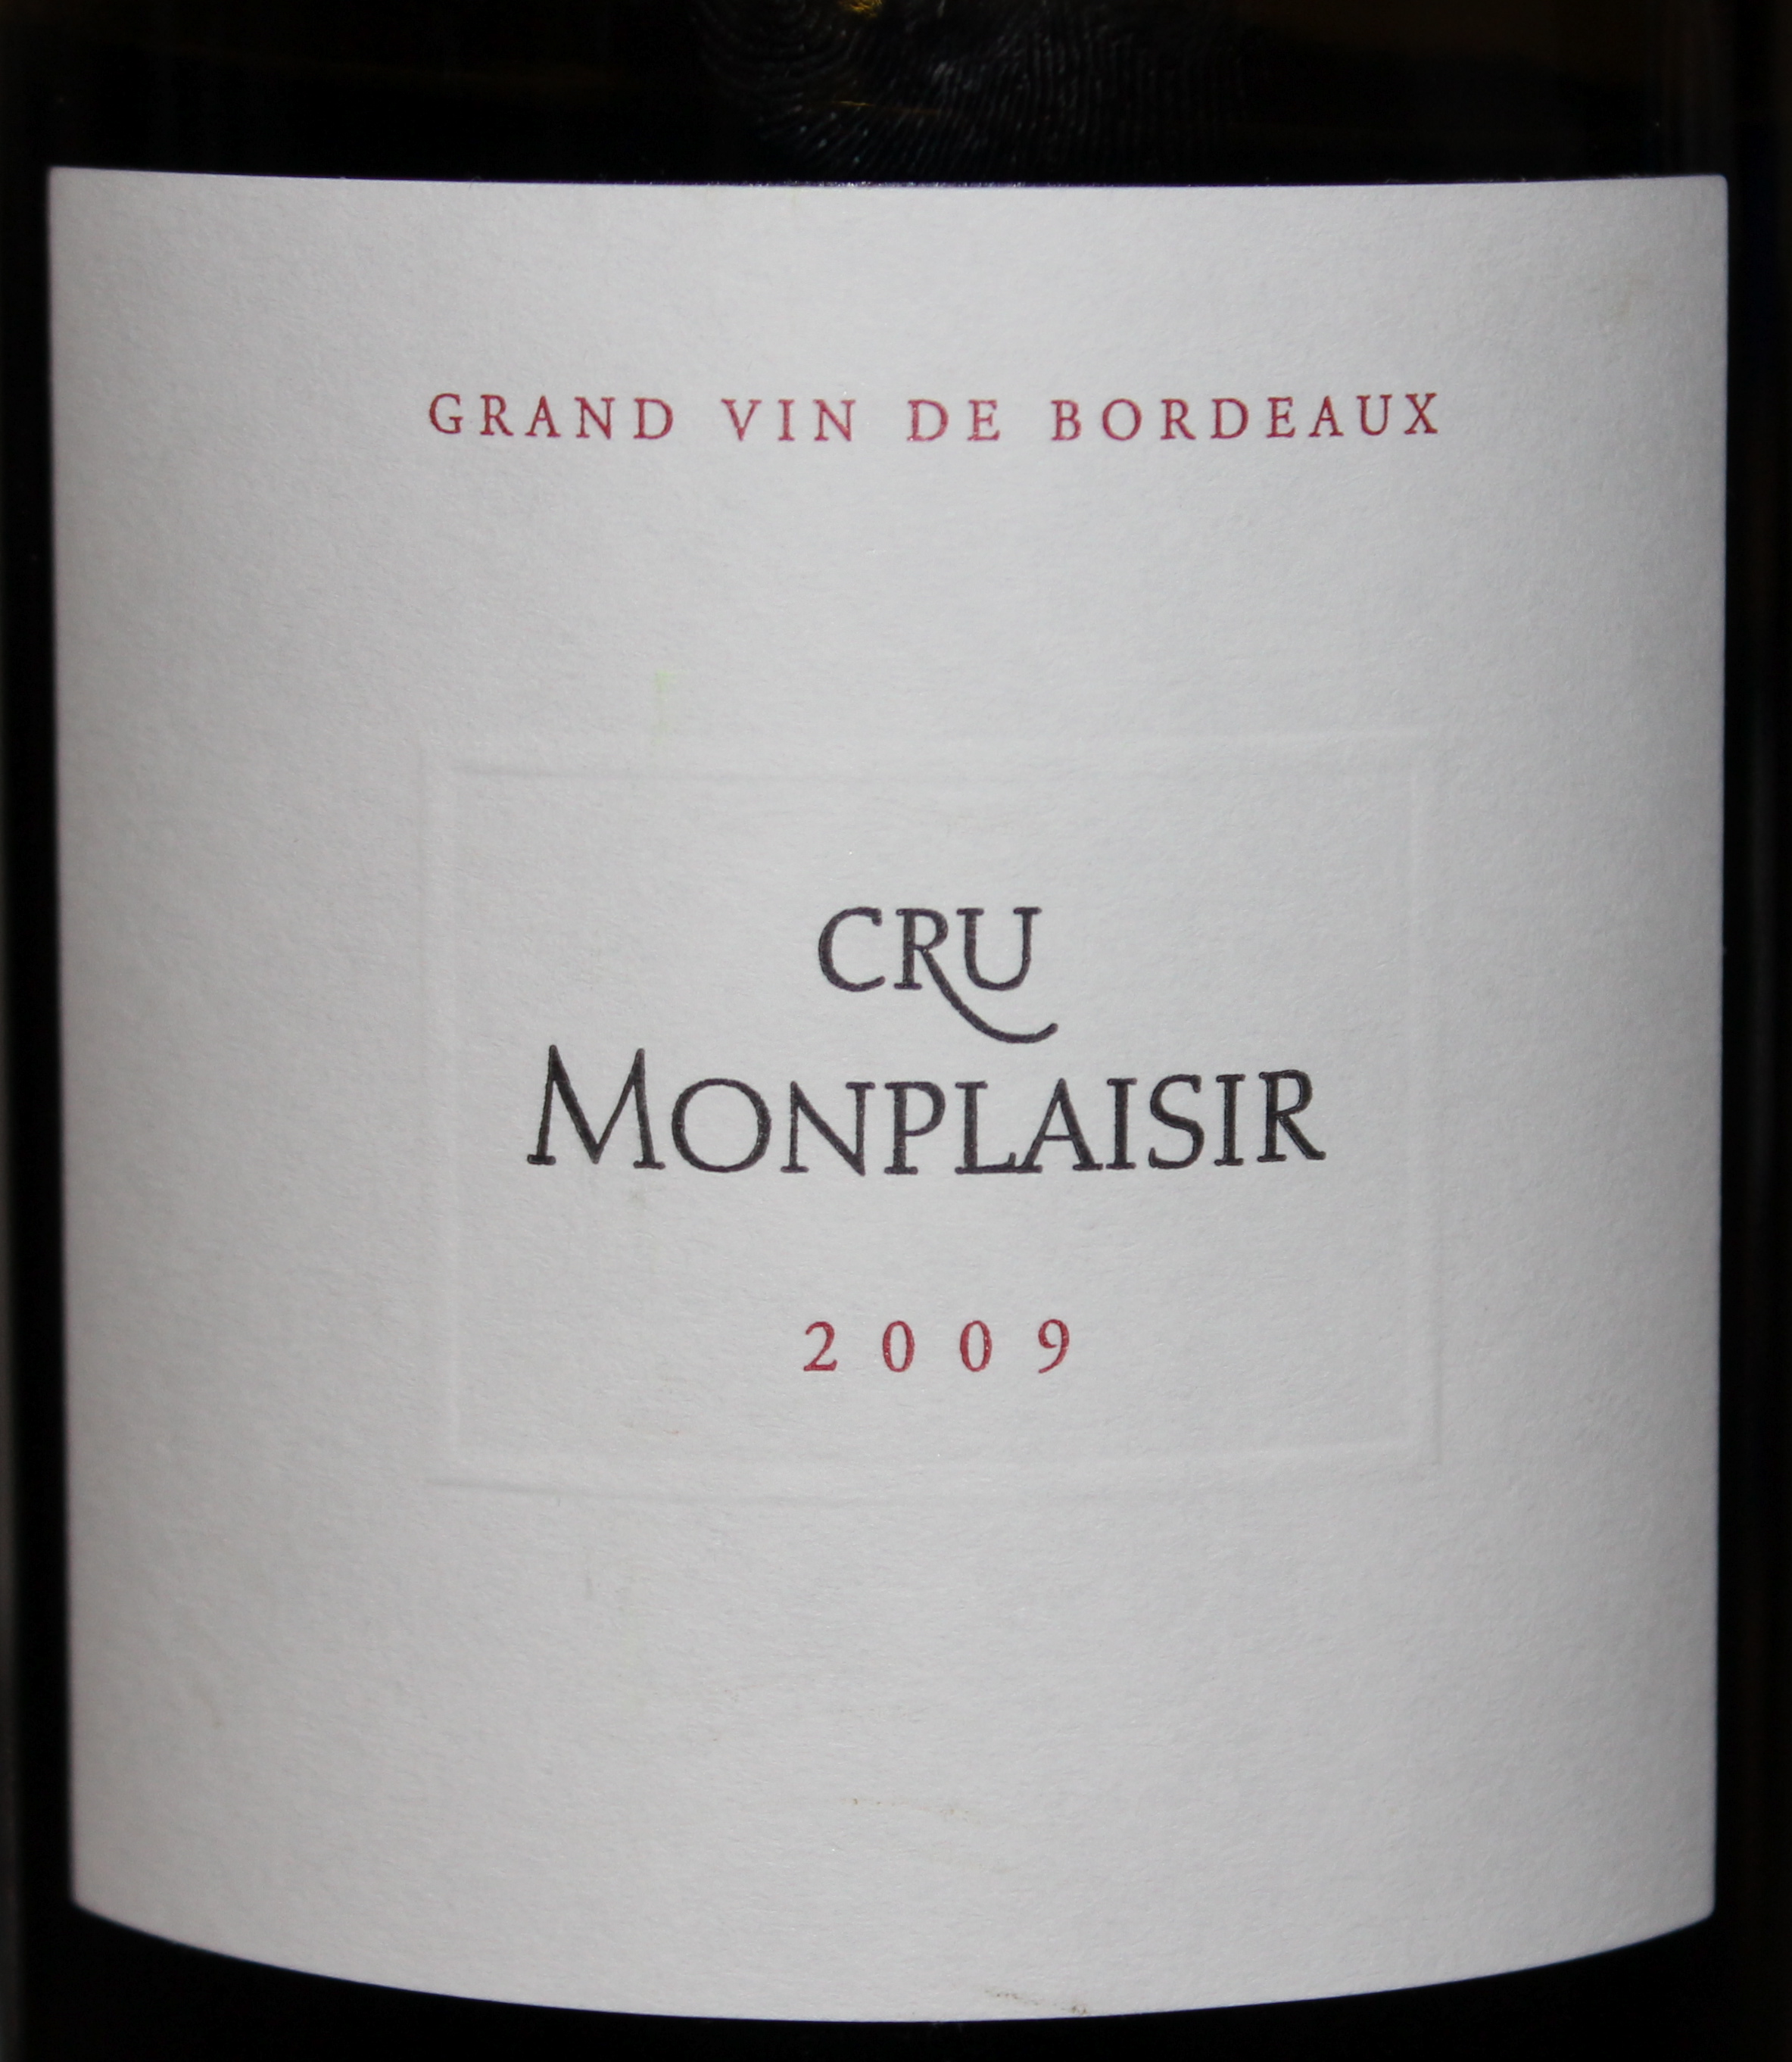 Dancing with the (All-) Stars Week 10, Part 1: 2009 Cru Monplaisir, Bordeaux, France